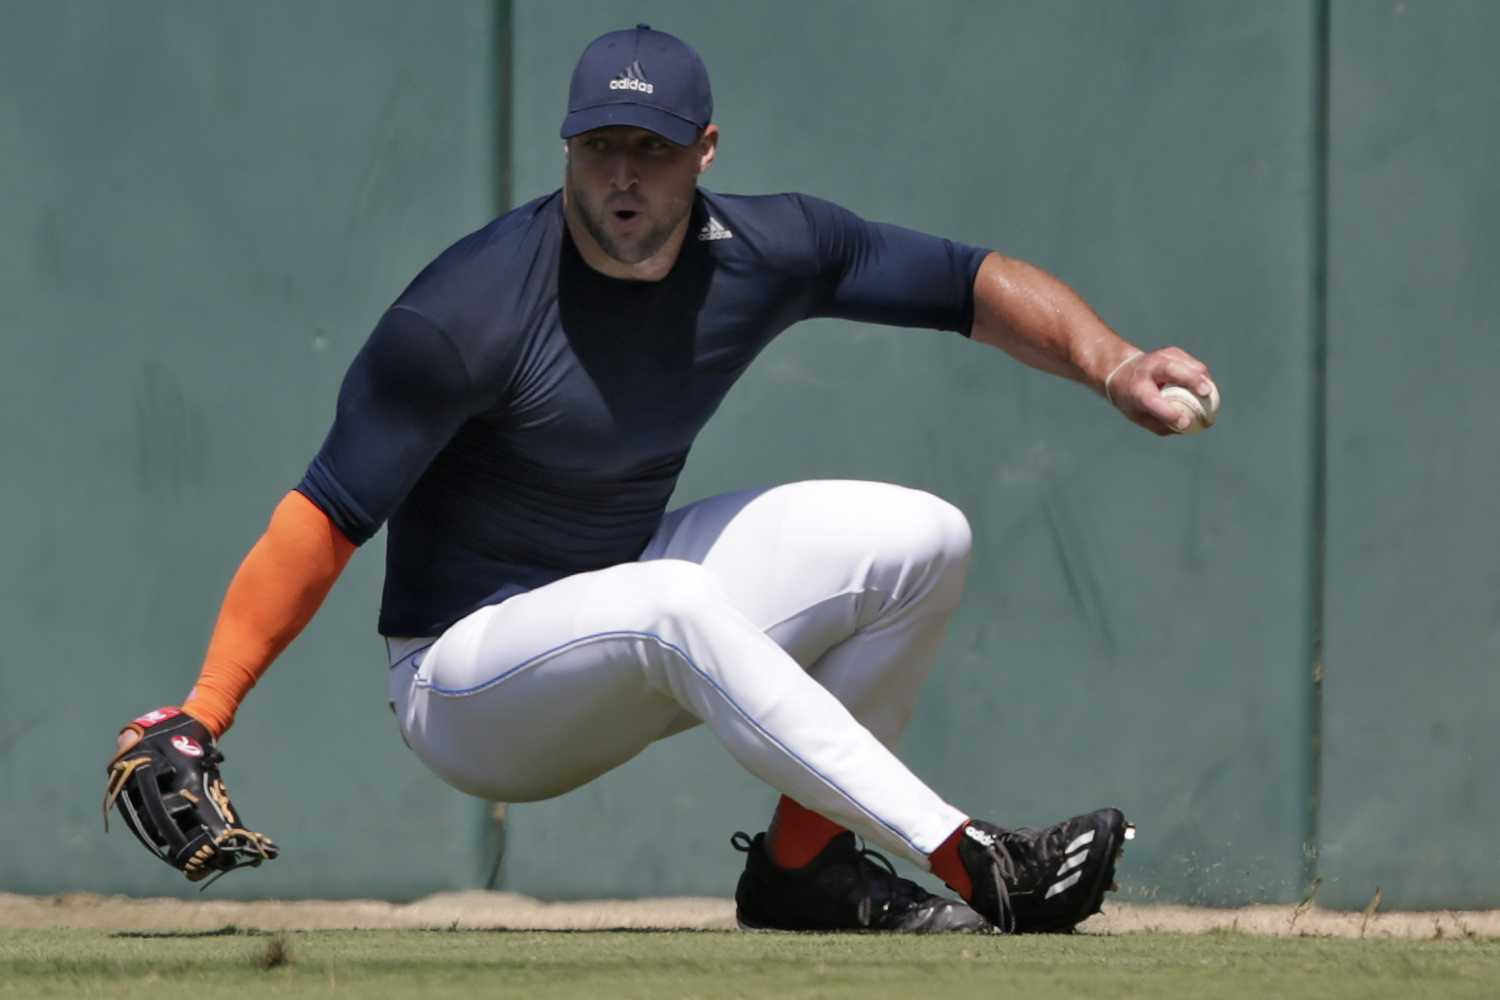 Former+NFL+quarterback+Tim+Tebow+loses+his+footing+as+he+fields+a+ball+during+outfield+drills+at+USC%27s+Dedeaux+Field+in+Los+Angeles+during+a+private+baseball+tryout+on+Tuesday%2C+Aug.+30%2C+2016.+%28Robert+Gauthier%2FLos+Angeles+Times%2FTNS%2FMCT%29